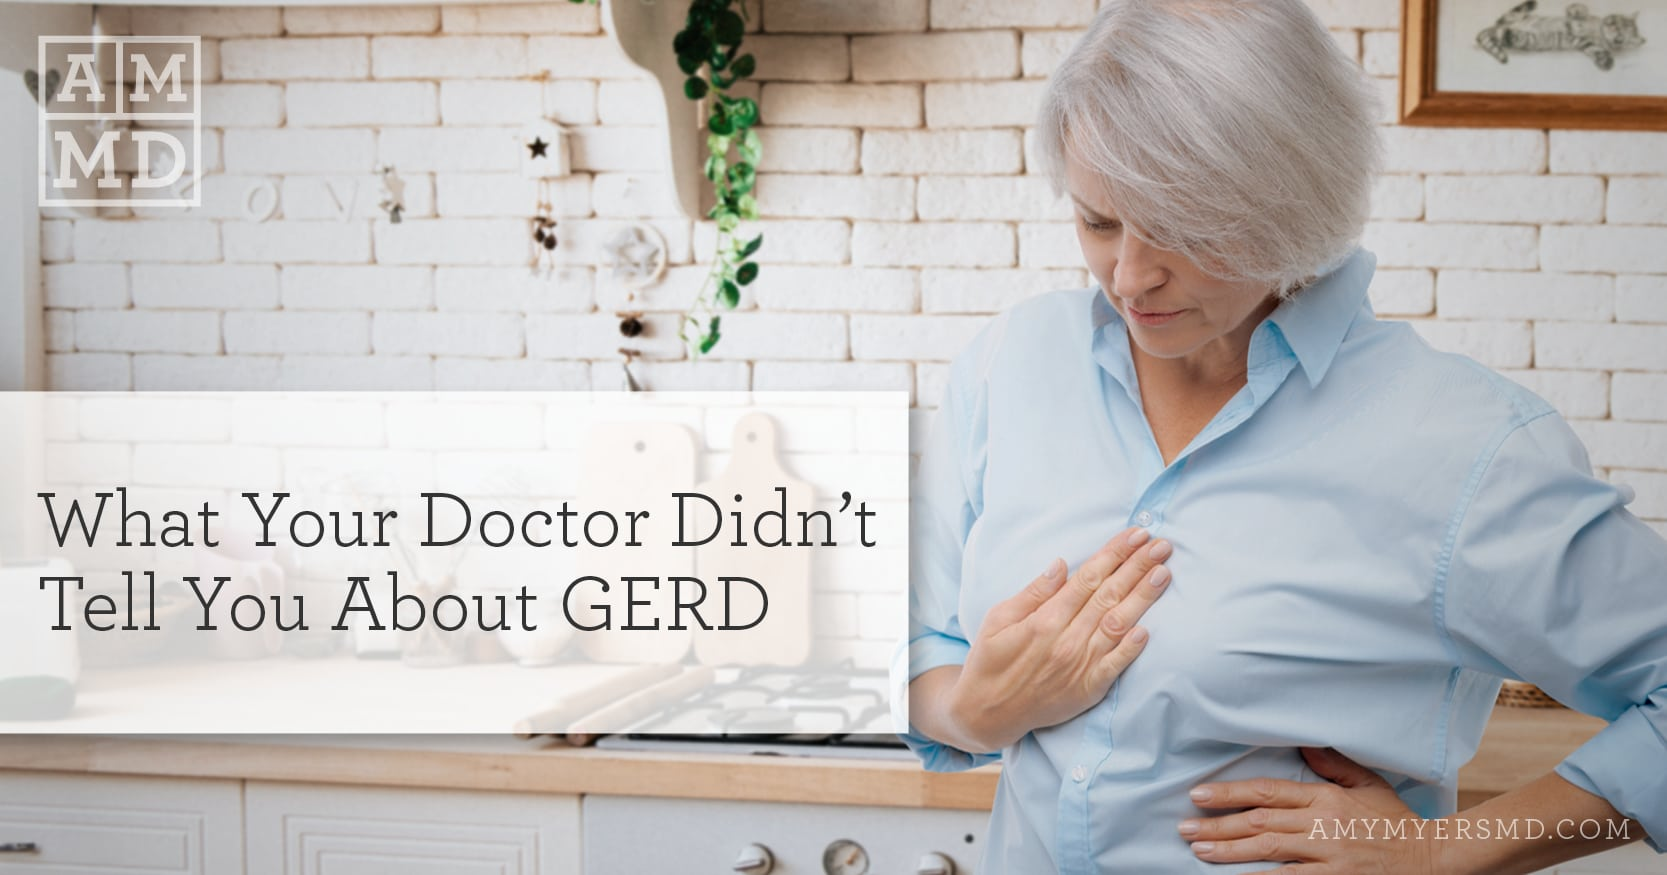 GERD - What Your Doctor Didn't Tell You - Woman with Chest Pain - Featured Image - Amy Myers MD